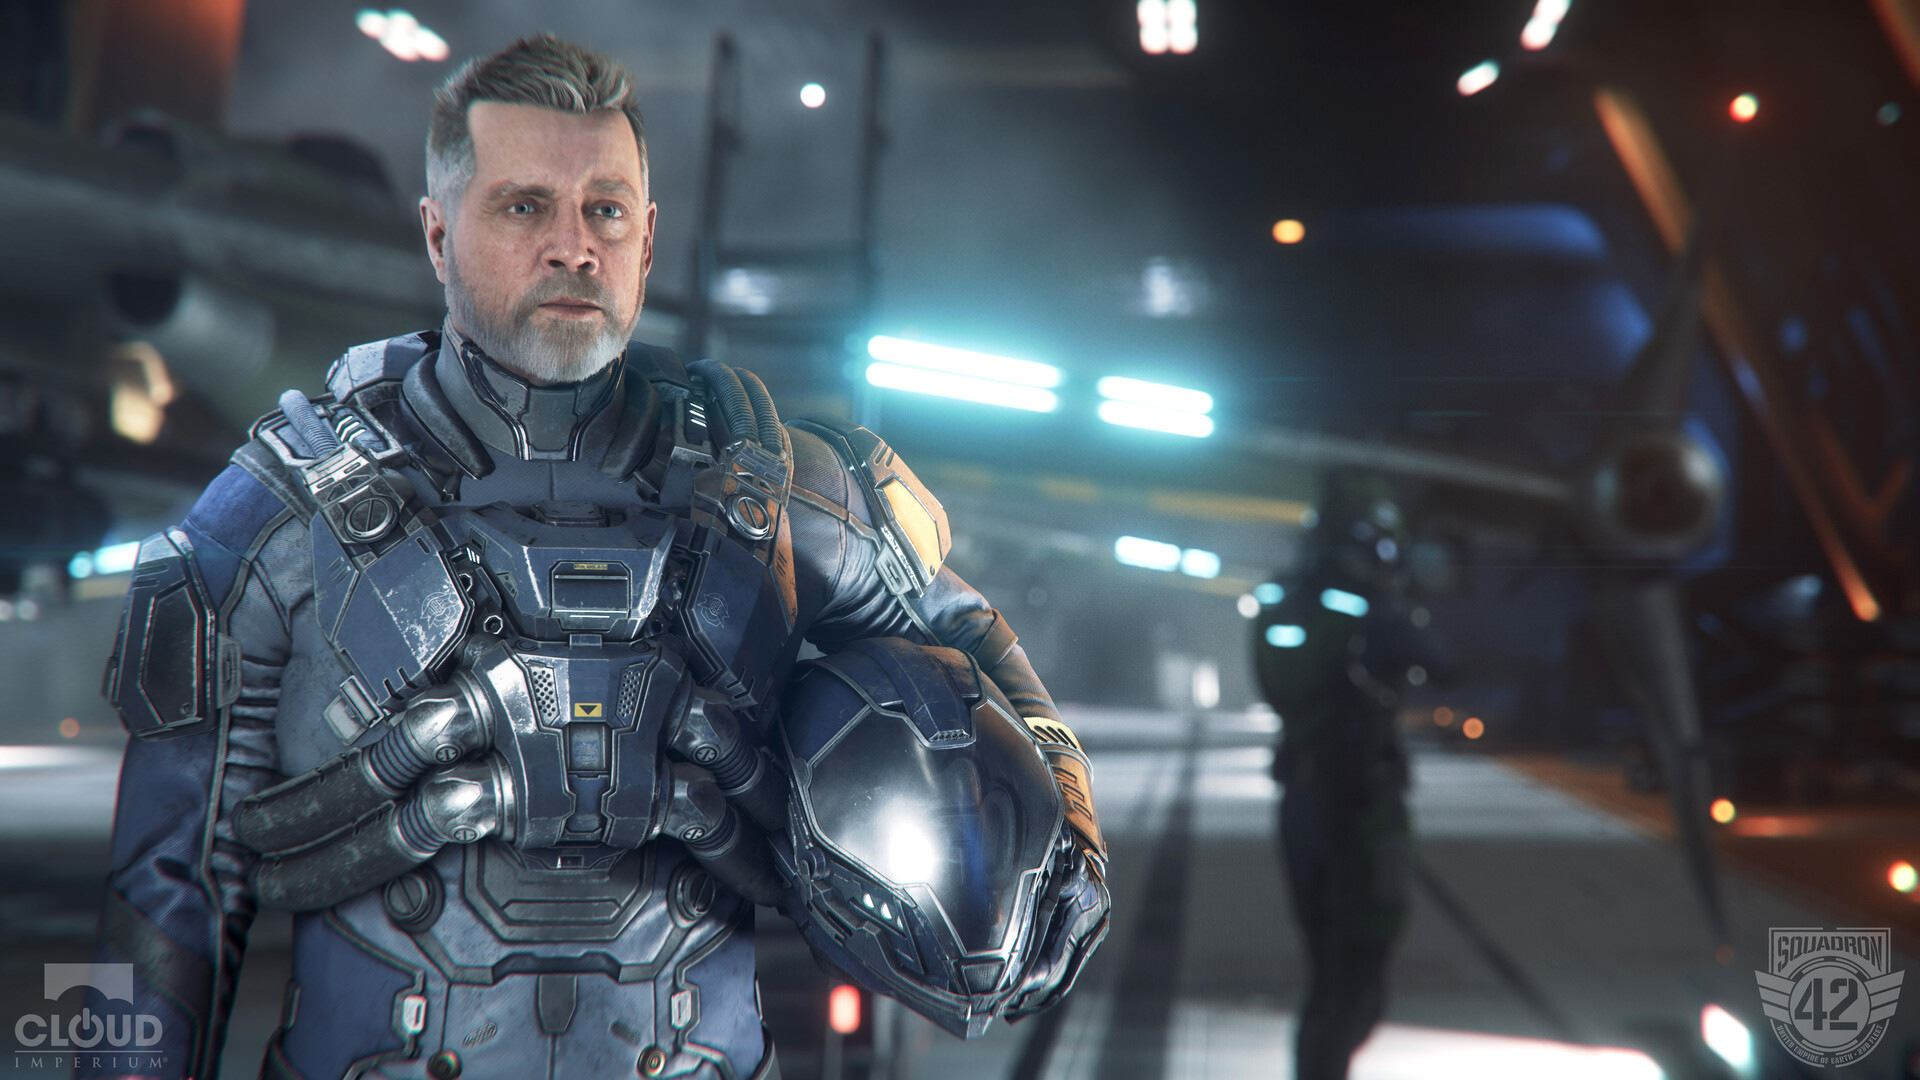 One of the characters in Squadron 42 is the Star Citizen single